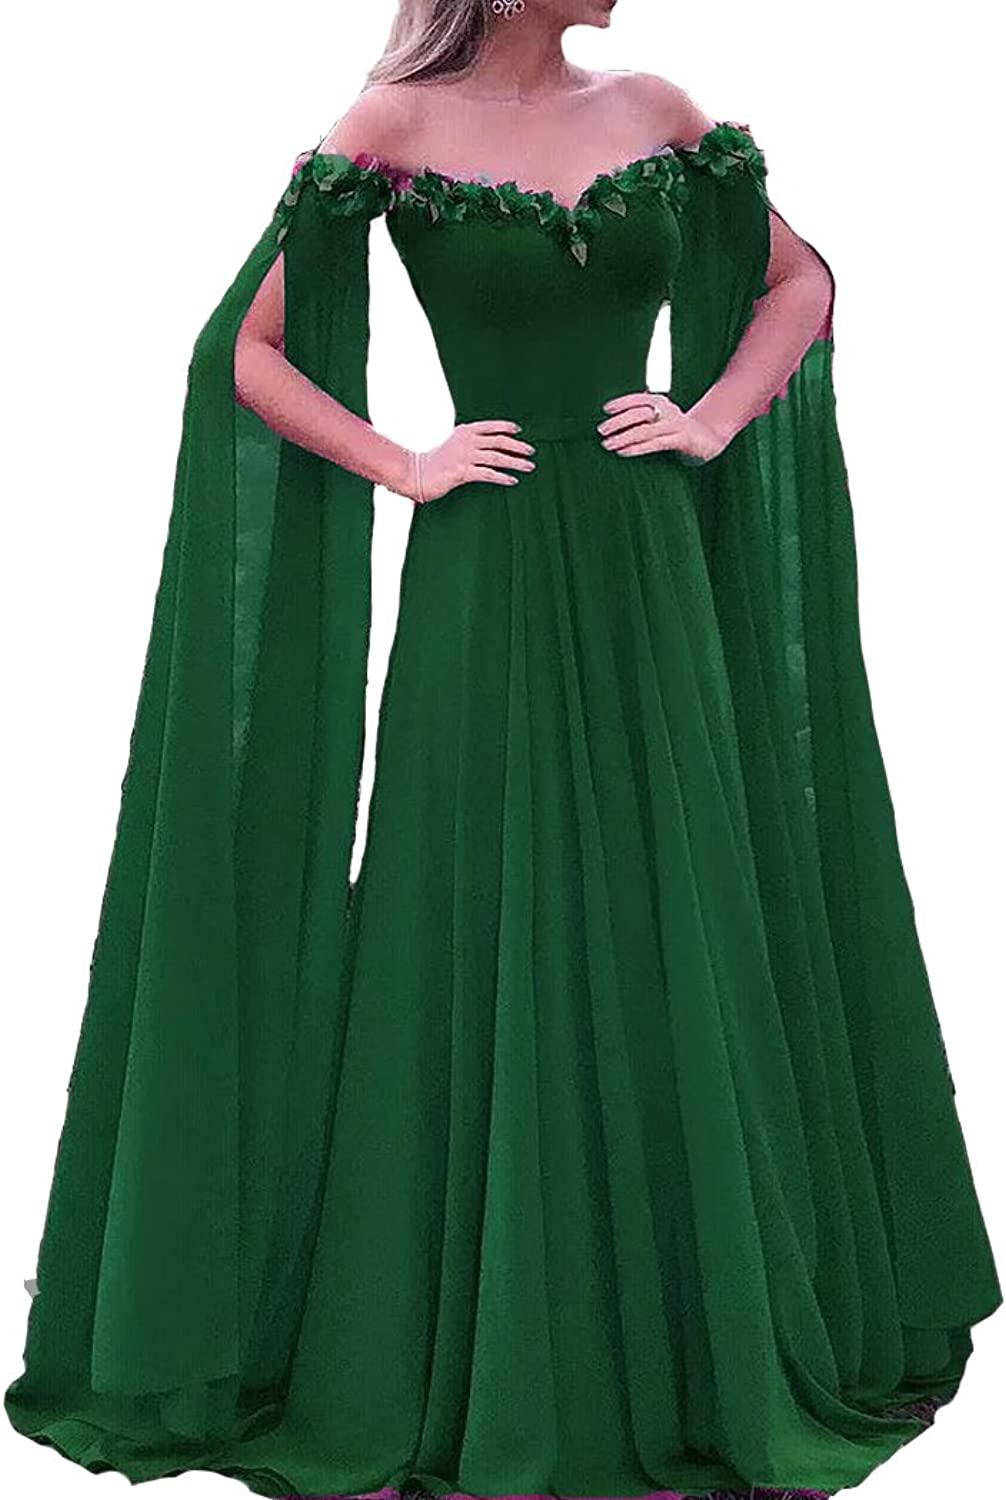 Lemai Floral Off The Shoulder Goddess Long Sleeves Cape Prom Evening Dresses